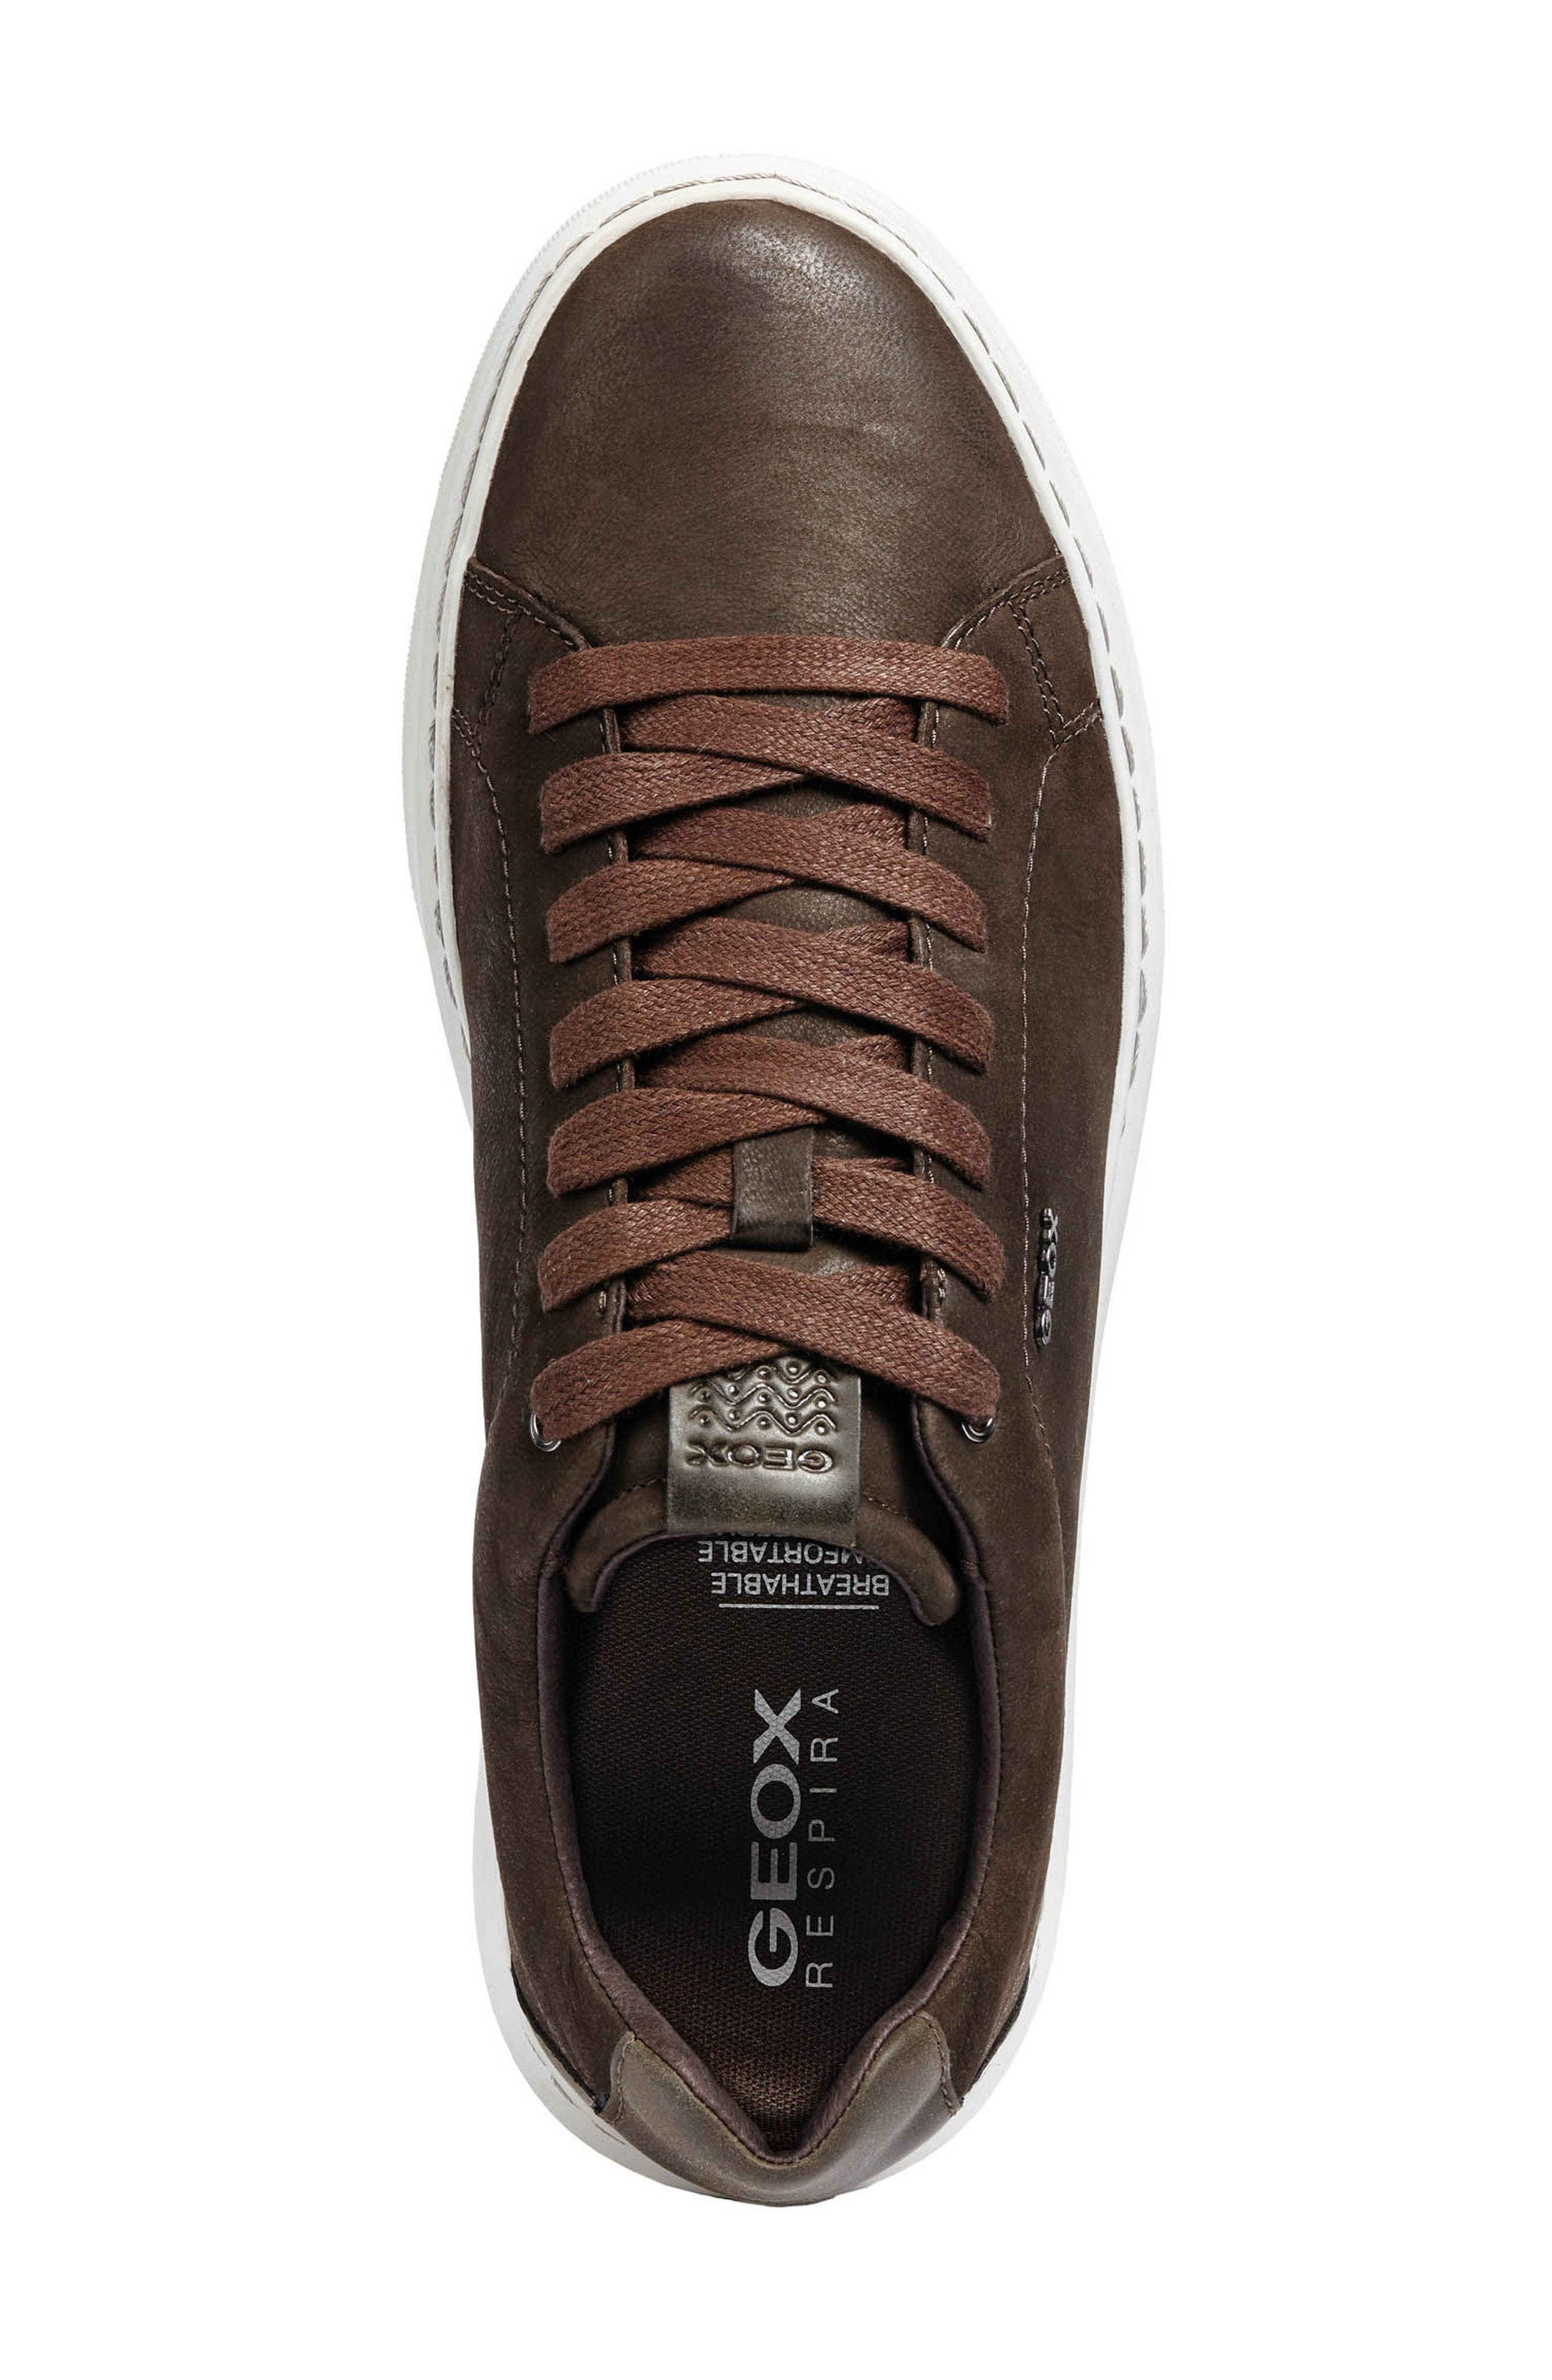 Deiven 5 Low Top Sneaker,                             Alternate thumbnail 5, color,                             DARK COFFEE LEATHER